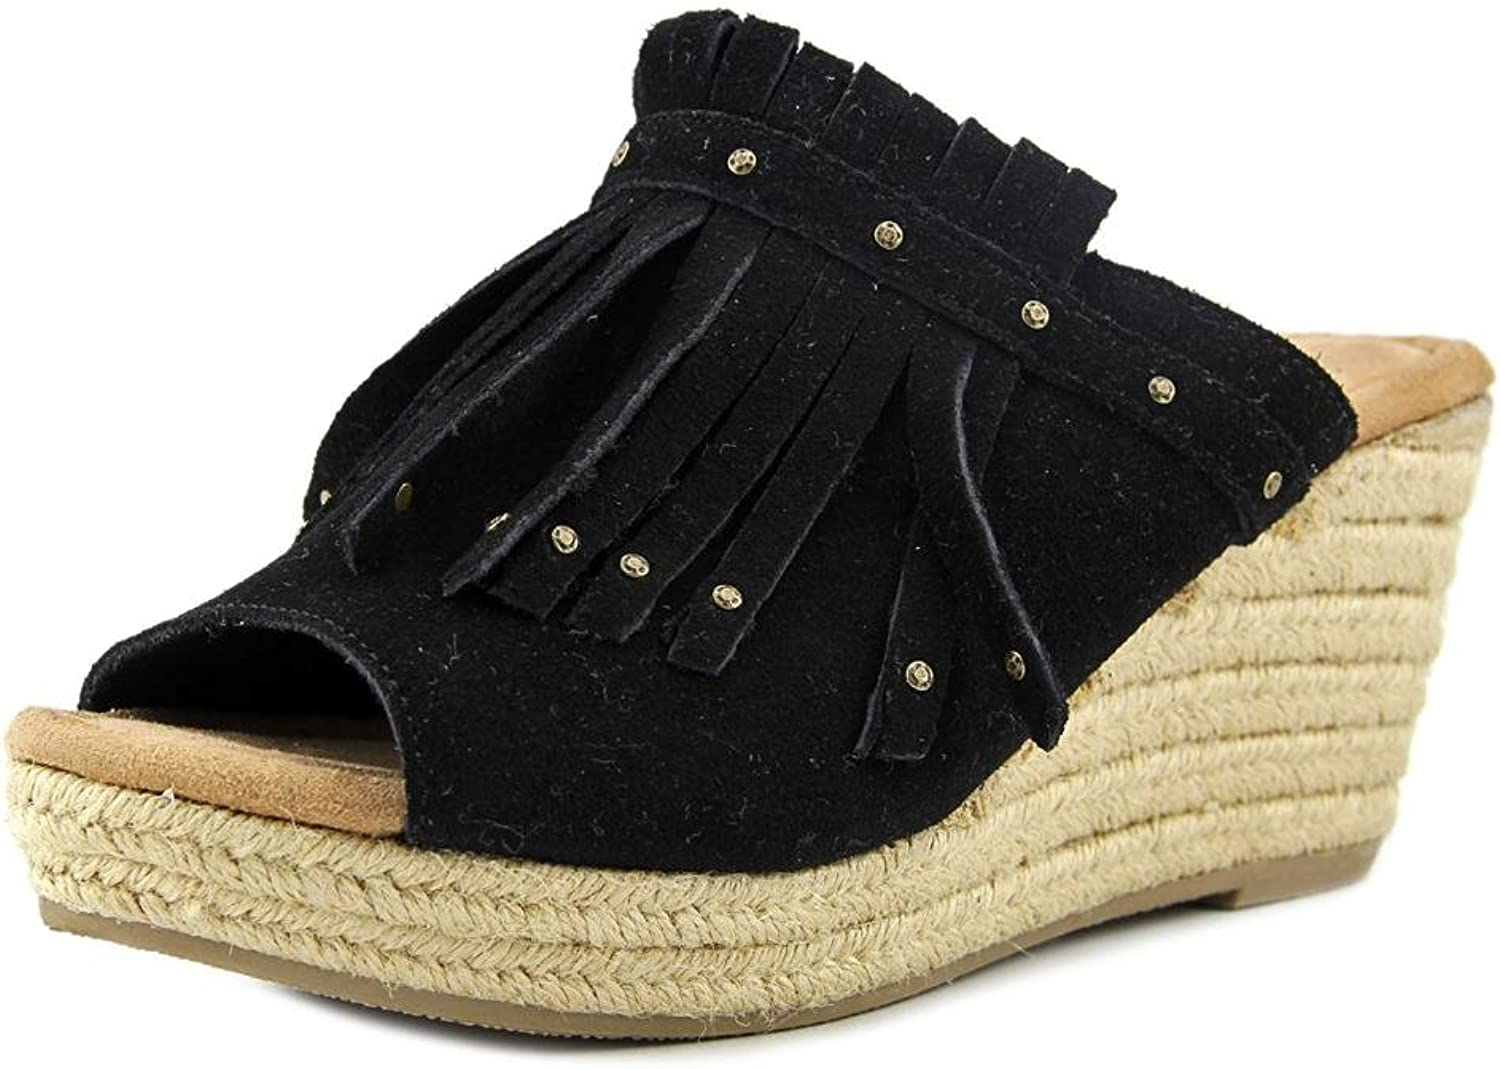 Minnetonka Women's Quinn Wedge Sandal - 71329Blk